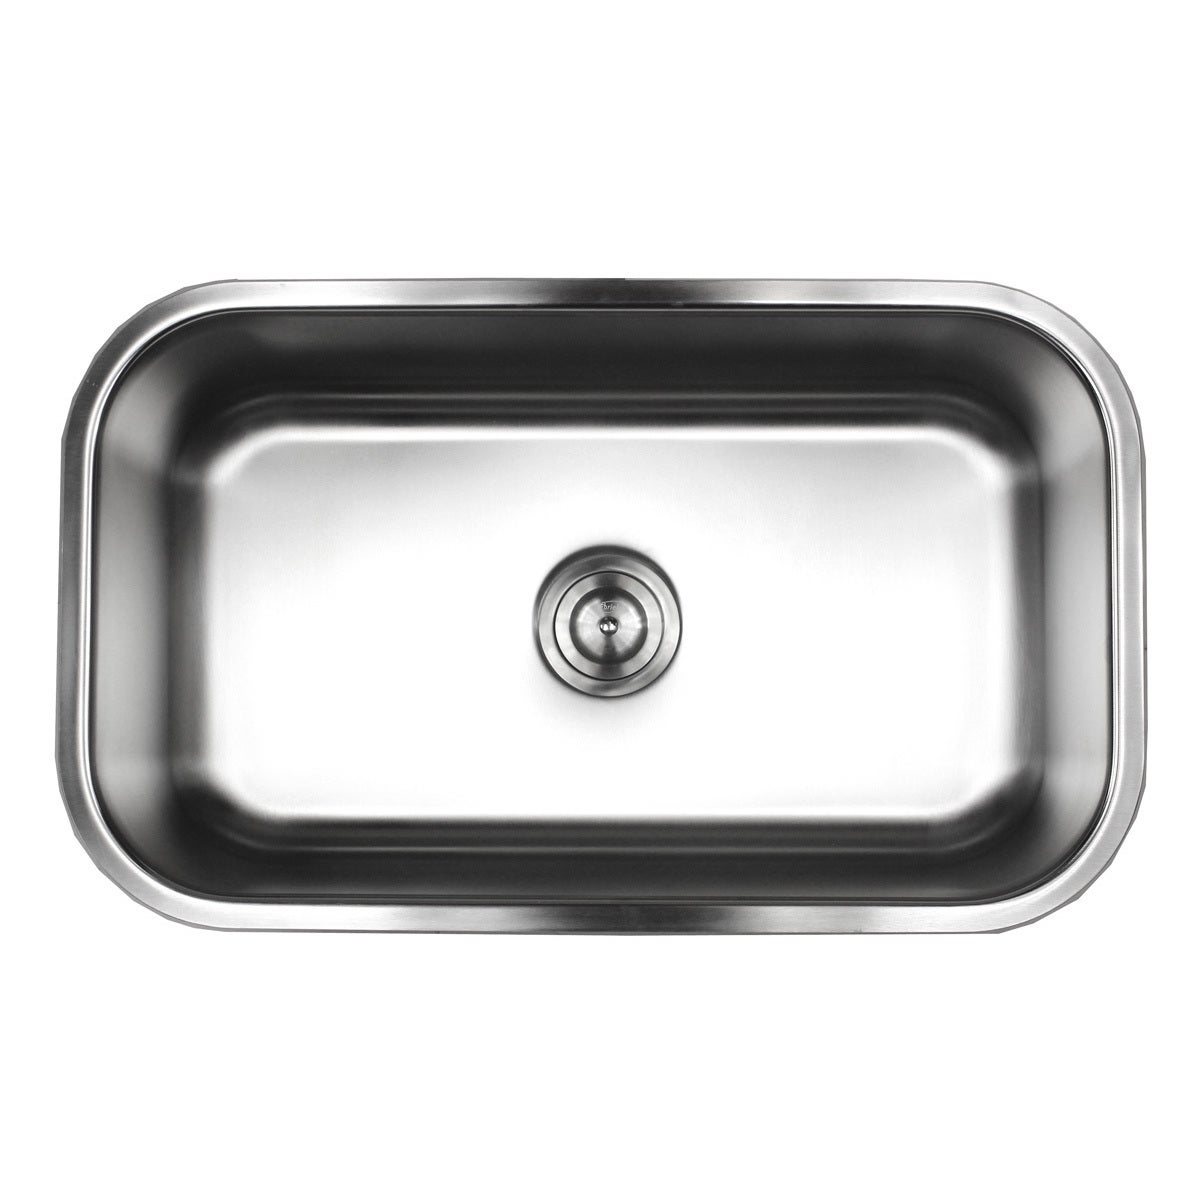 Kitchen Sink Basket Brushed satin 18 gauge stainless steel 30 inch undermount single brushed satin 18 gauge stainless steel 30 inch undermount single bowl kitchen with sink basket strainer free shipping today overstock 18491834 workwithnaturefo